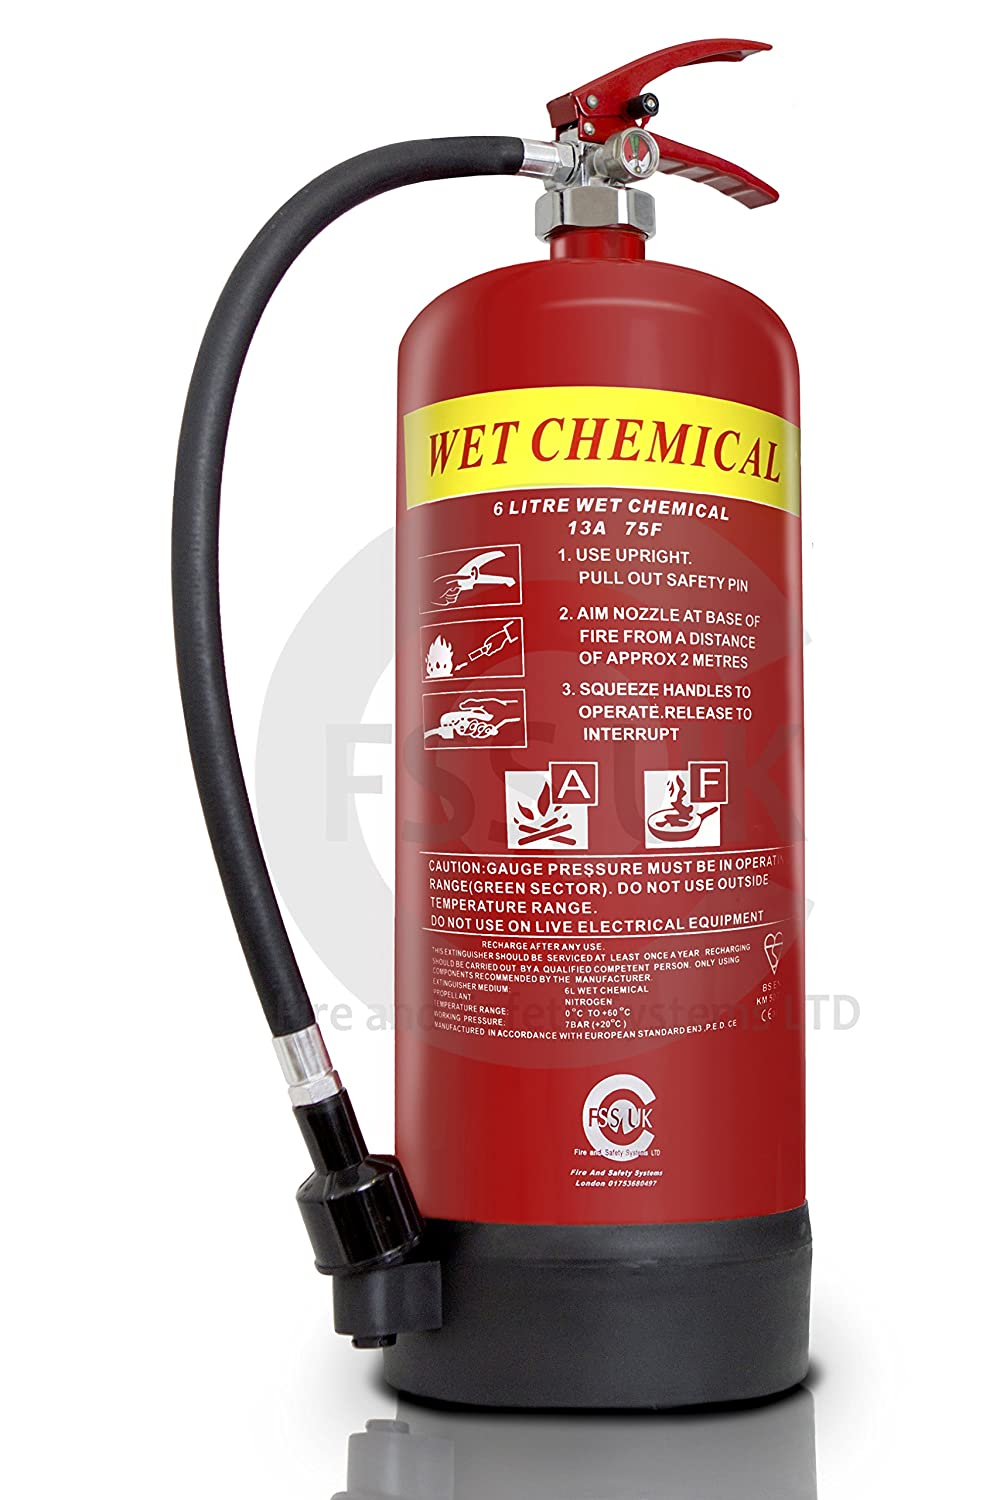 FSS UK PREMIUM 6 LITRE WET CHEMICAL FIRE EXTINGUISHER. IDEAL FOR COMMERCIAL KITCHEN, RESTAURANTS PUBS BARS COOKING FIRES. 6 L LTR WET CHEM